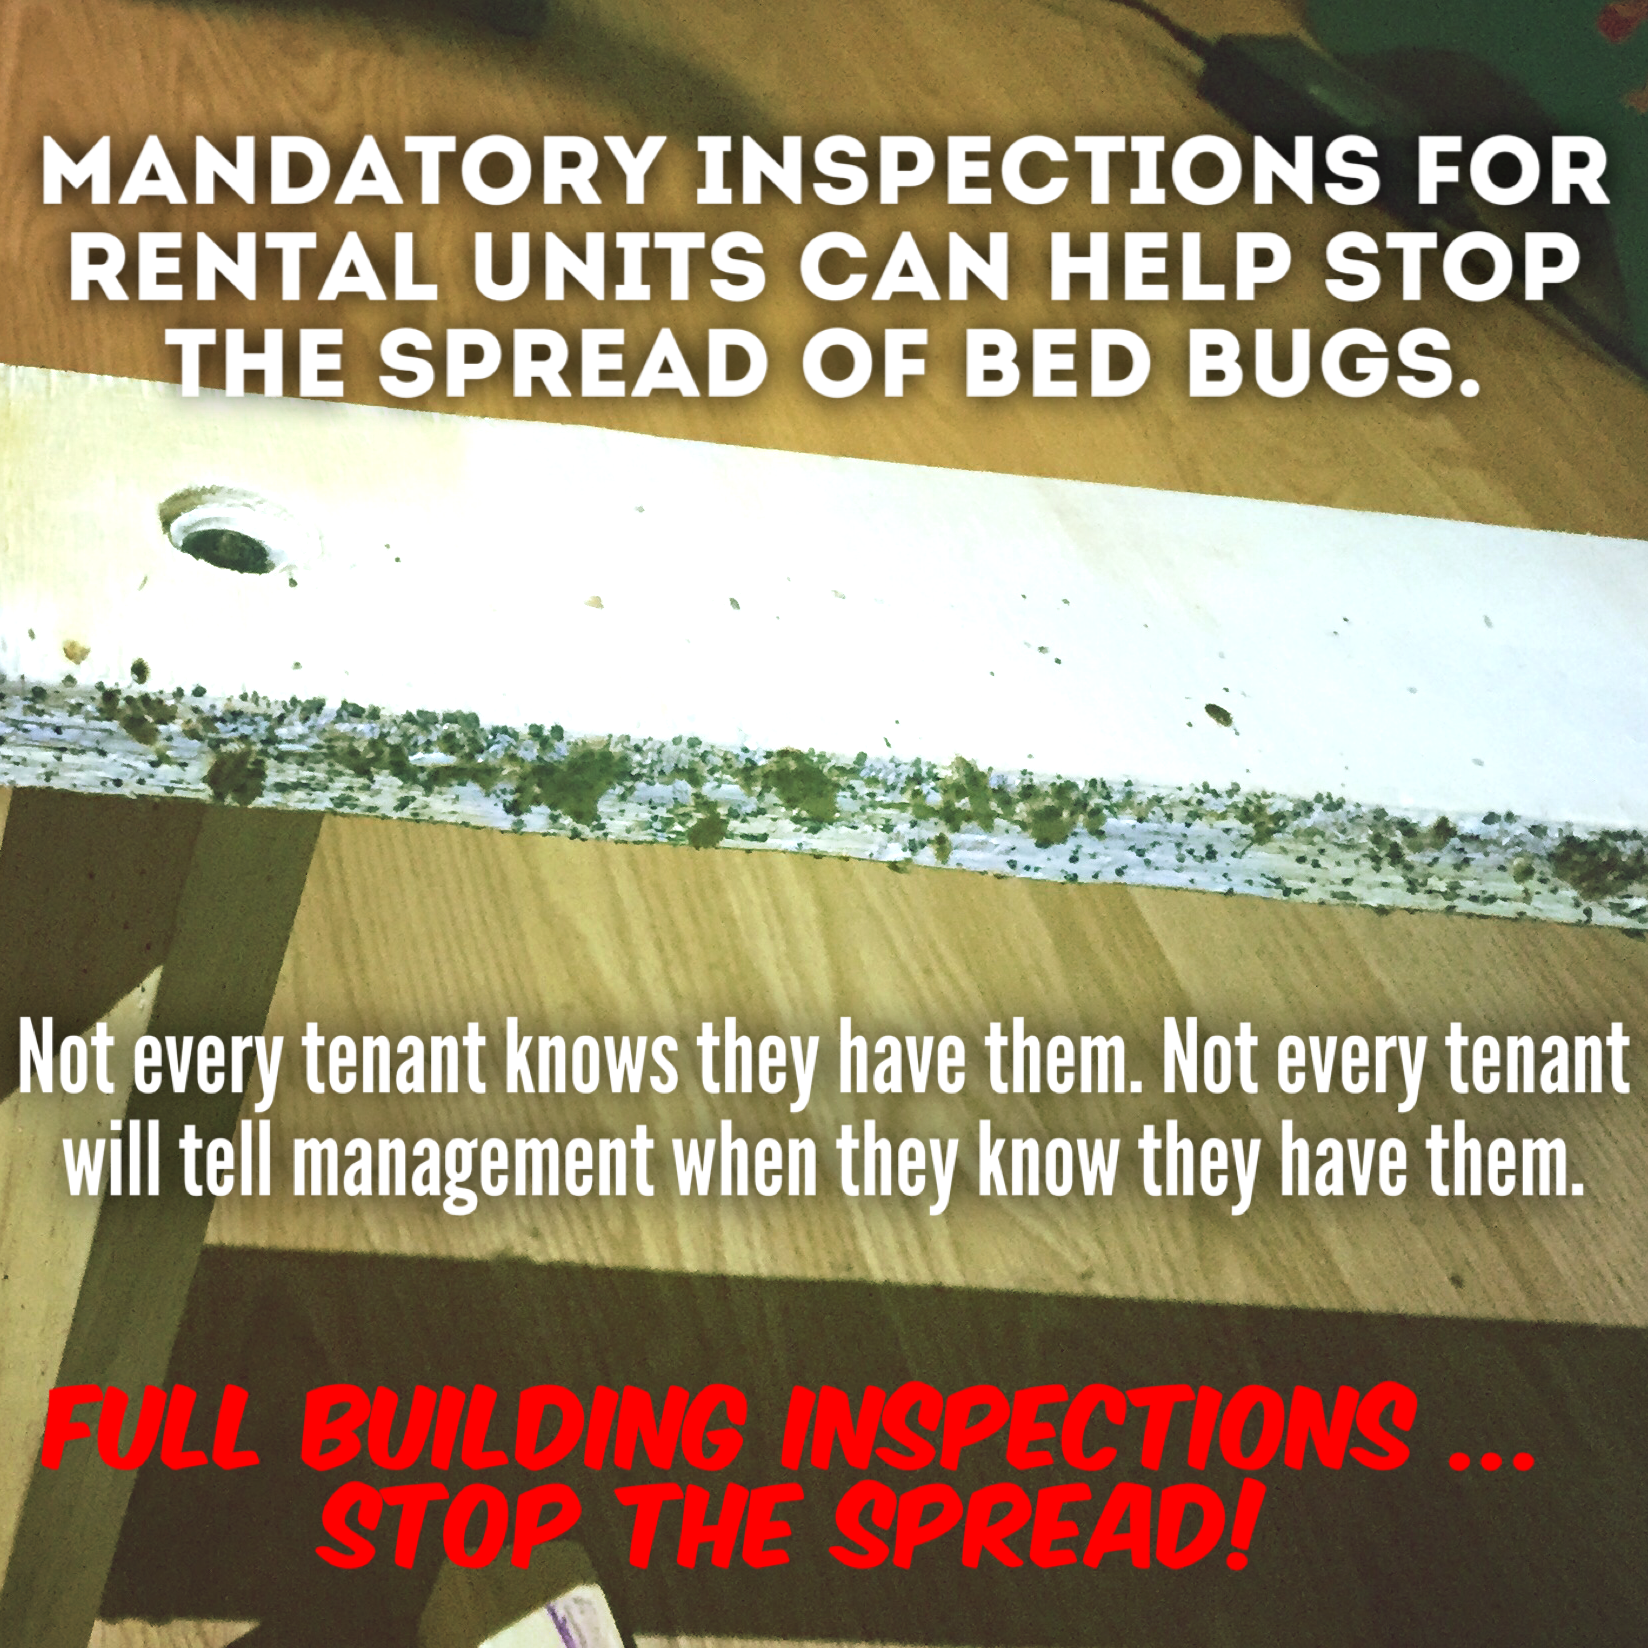 K-9-Assisted Bed bug inspections